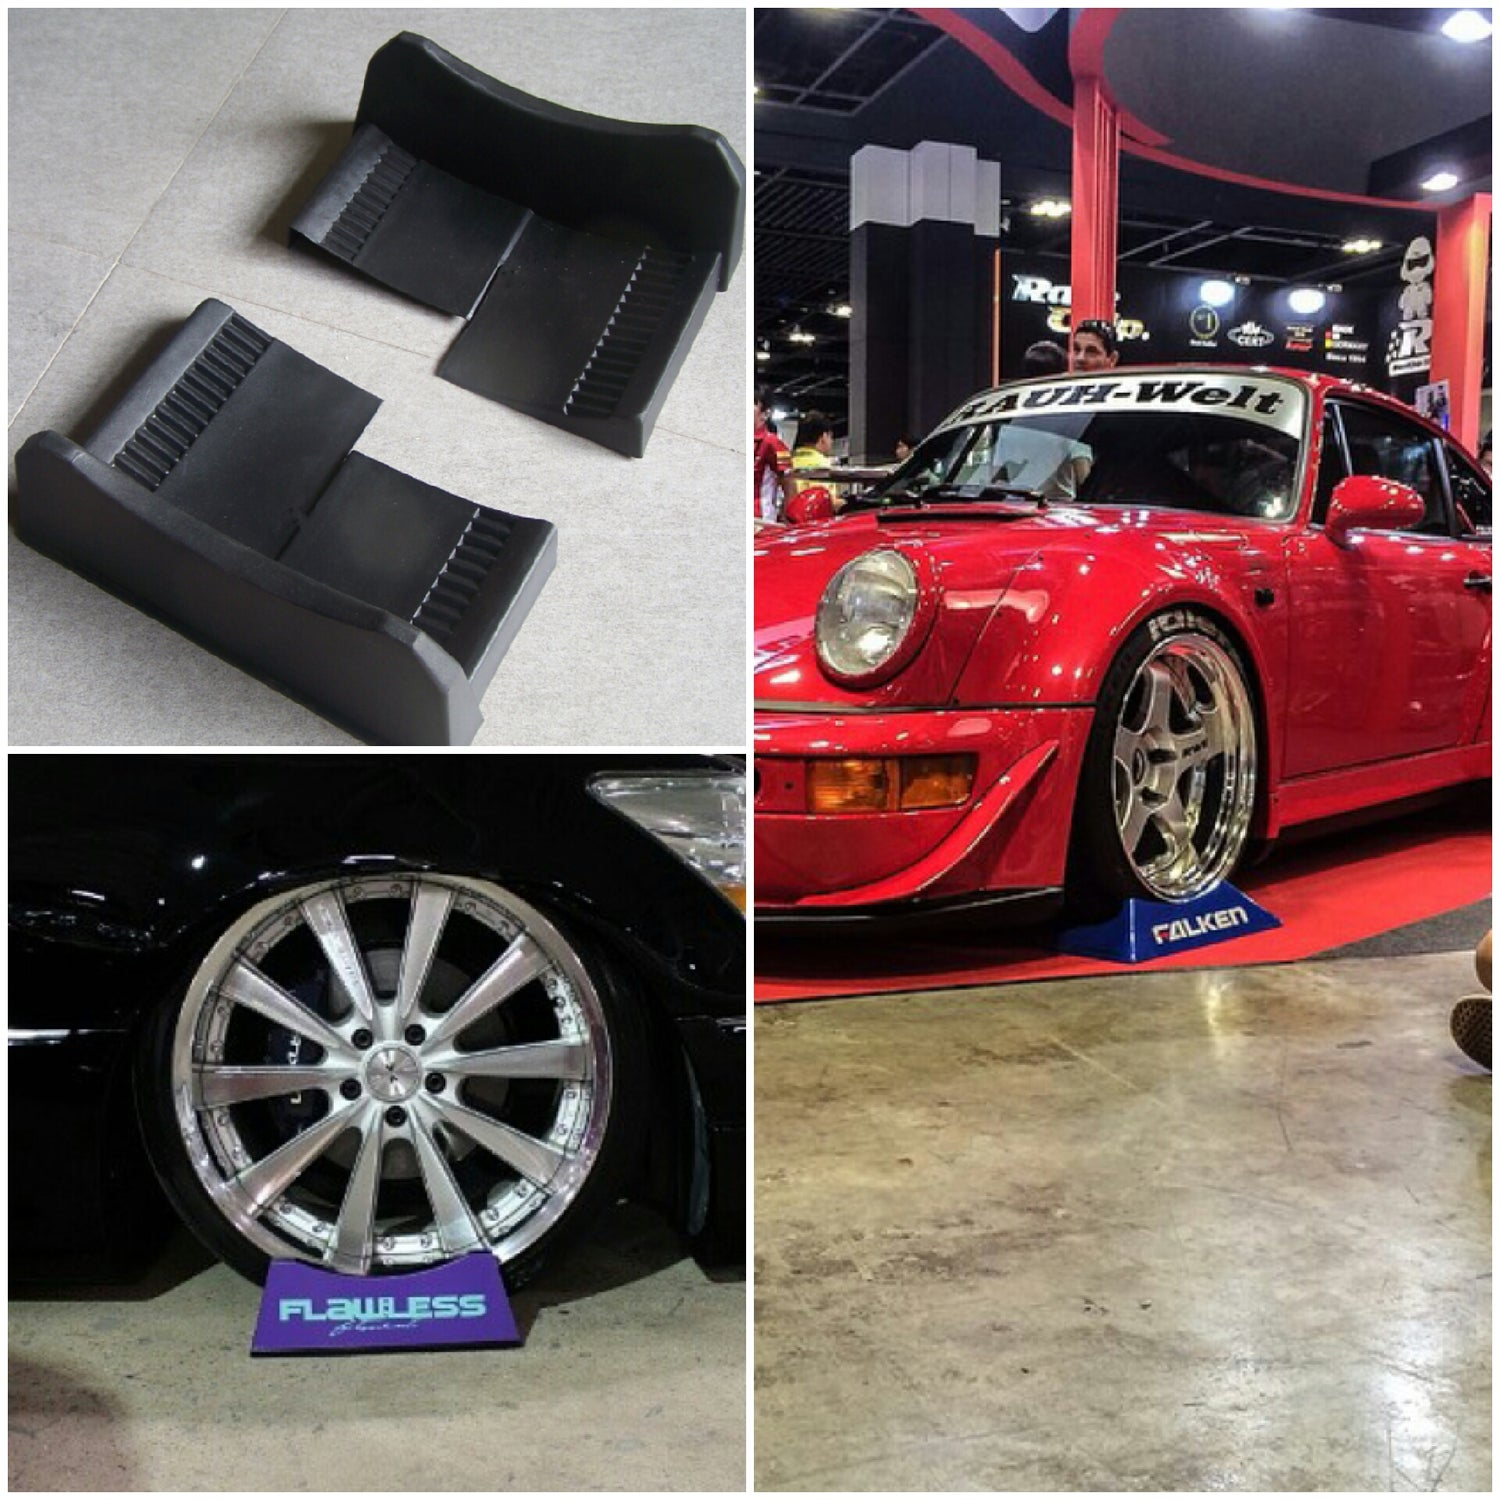 Tire Stands Wheel Swag Carshow Wheel And Tire Displays - Car show wheel stands